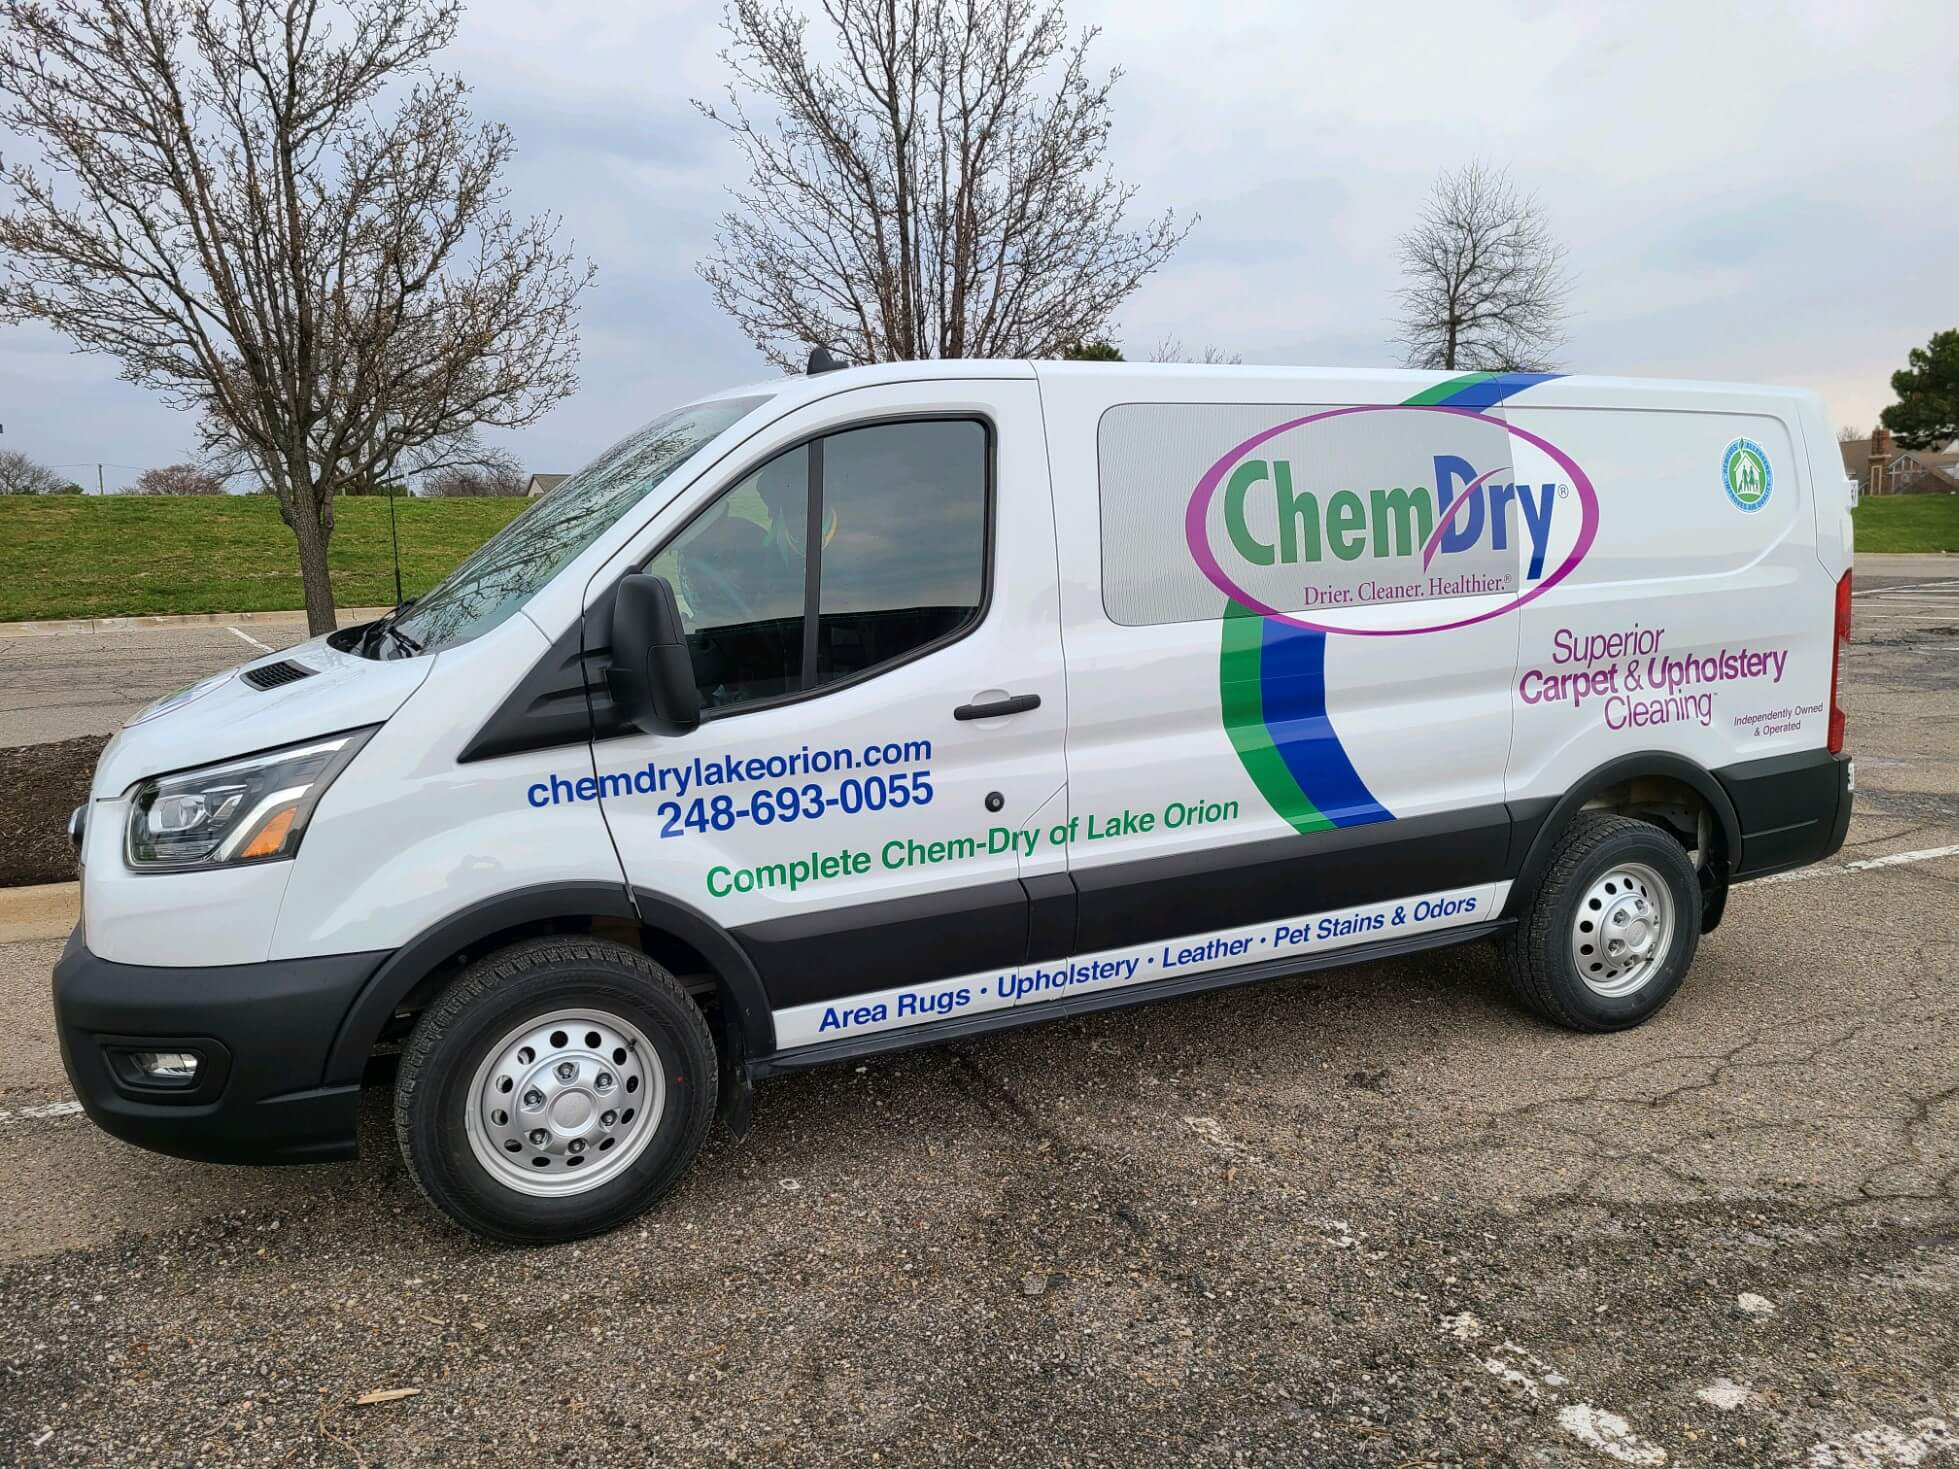 lake orion michigan carpet cleaning service for over 25 years